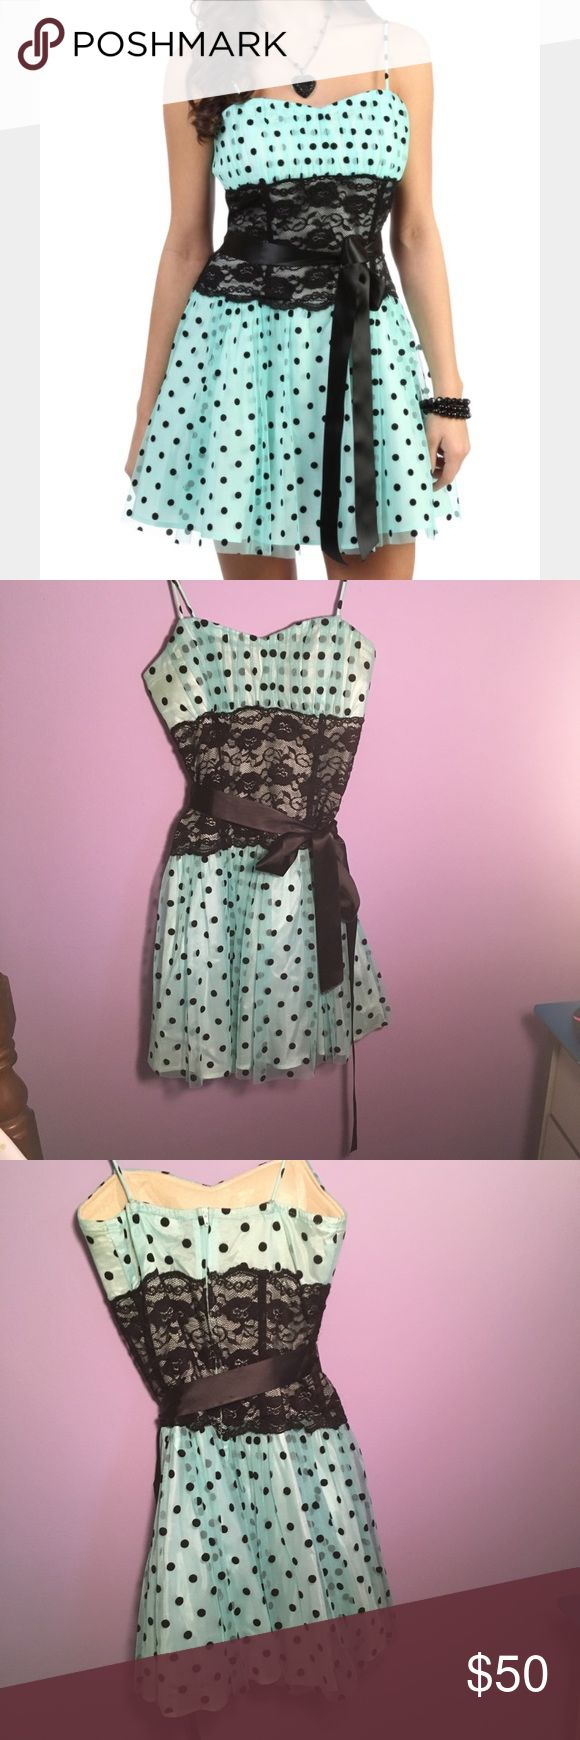 juniors prom/homecoming/formal dress fun flirty 👗 A small women's/juniors A line mint green dress. With polka dots, black lace waist, and satin ribbon around waist. Comfortable and a fun dress to wear. Excellent condition. Dresses Prom